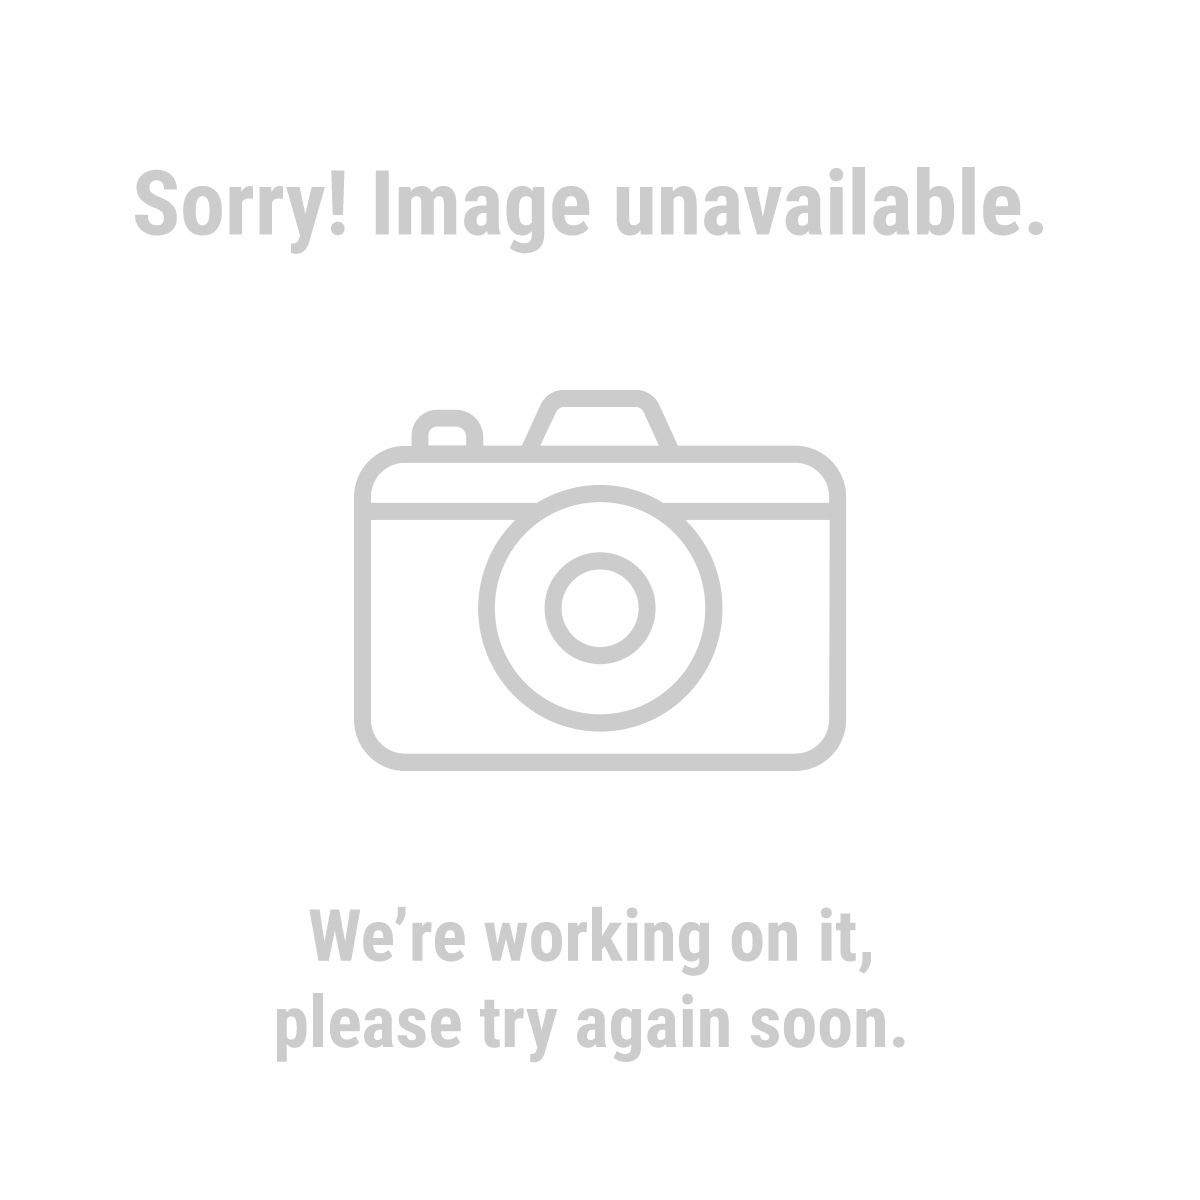 CoverPro 62860 10 ft. x 17 ft. Portable Garage